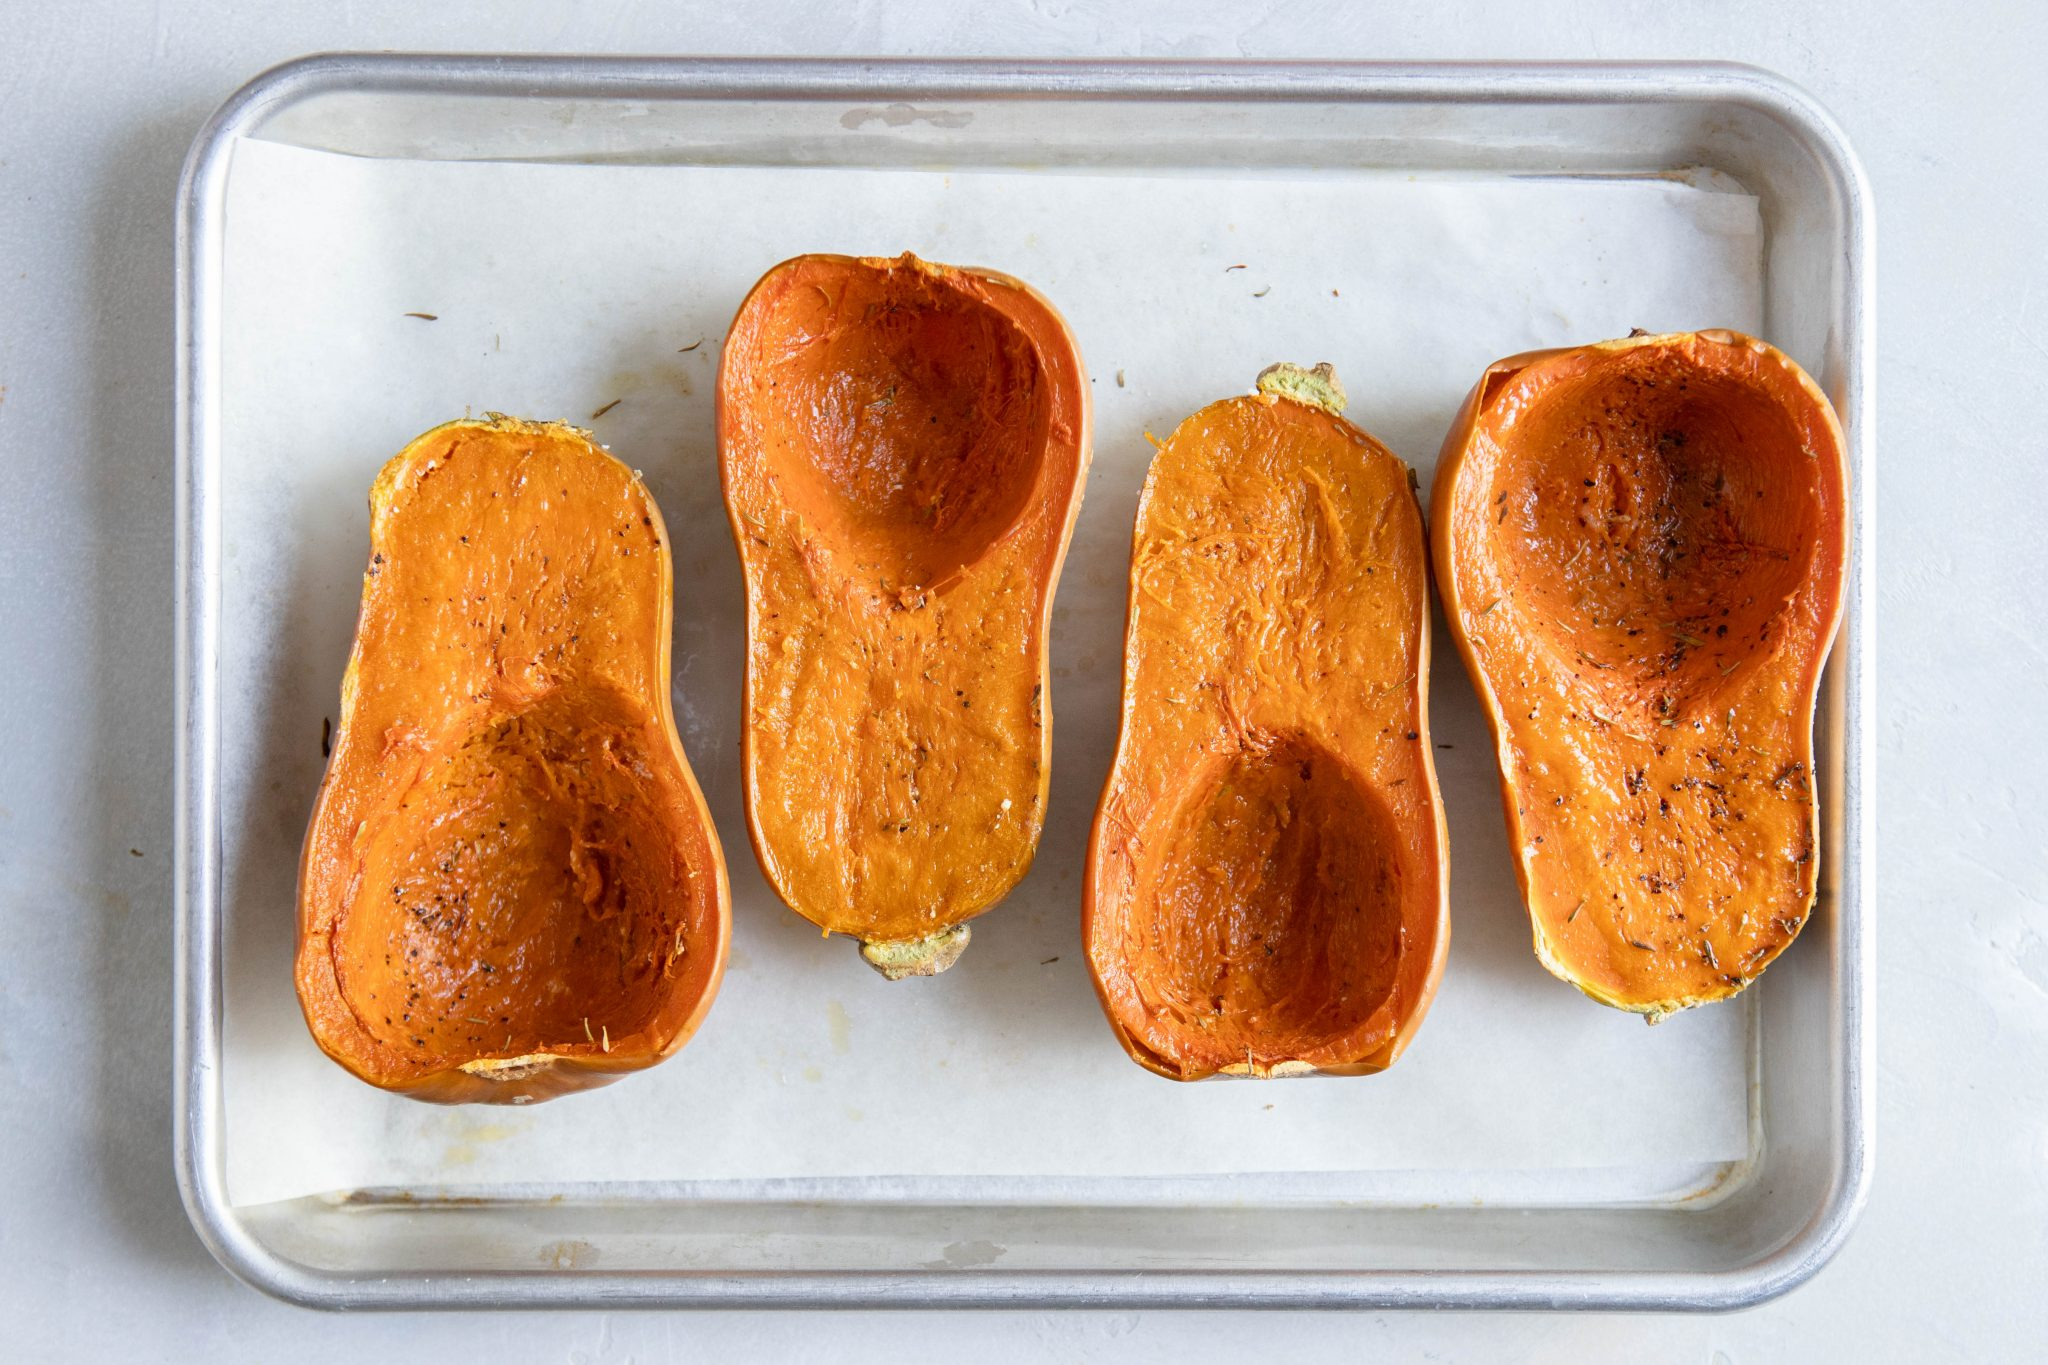 baked honeynut squash on a baking sheet with parchment paper